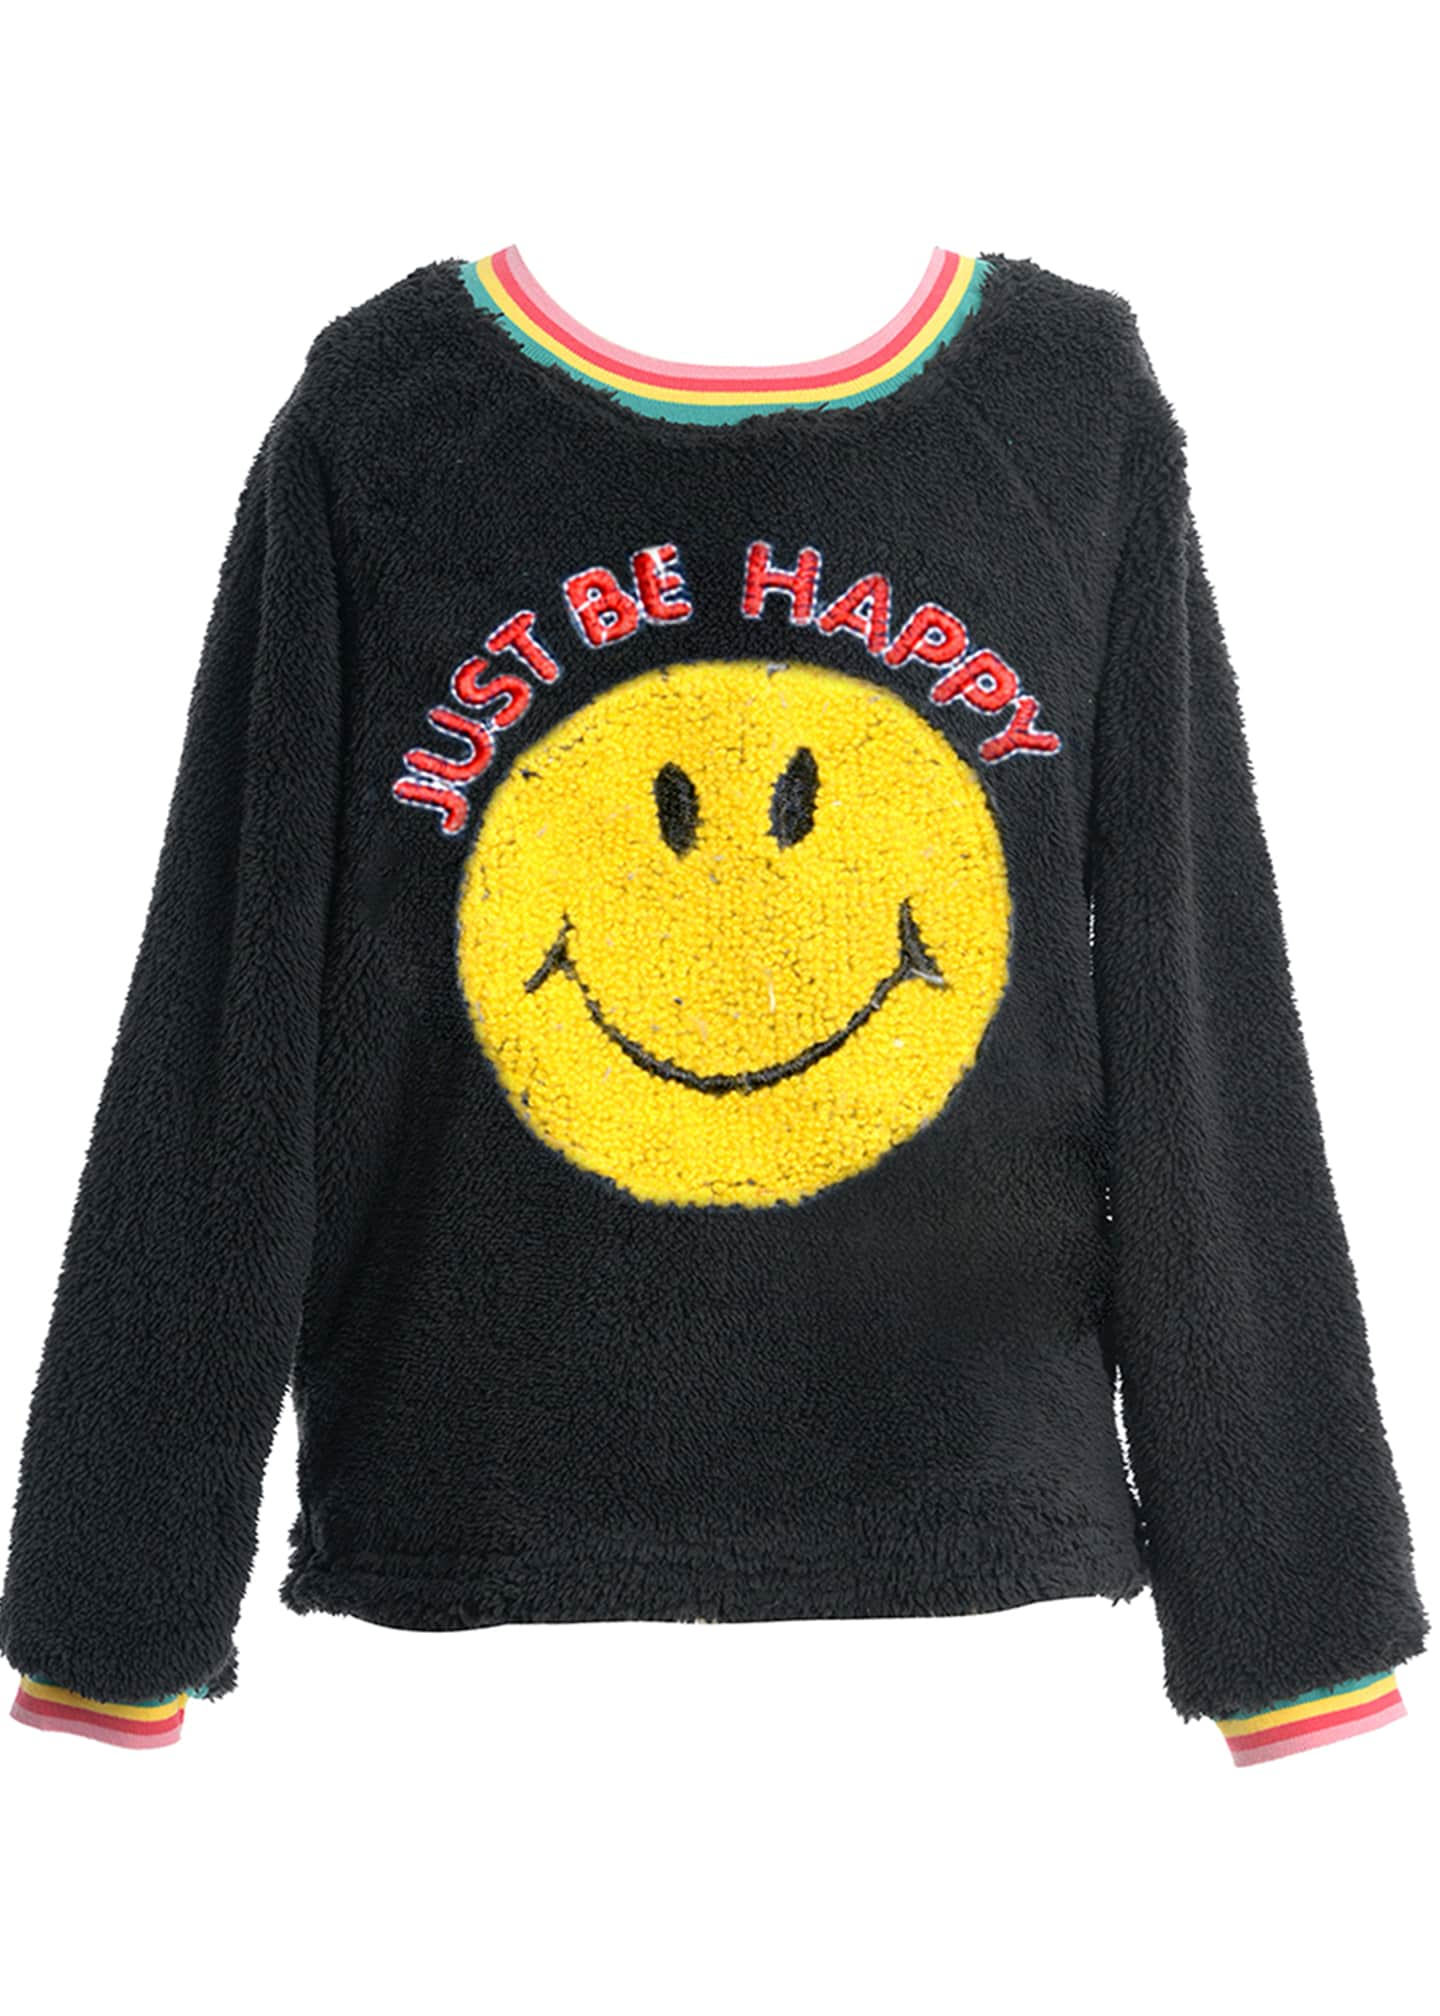 Hannah Banana Girl's Faux Sherpa Smiley Face Top,